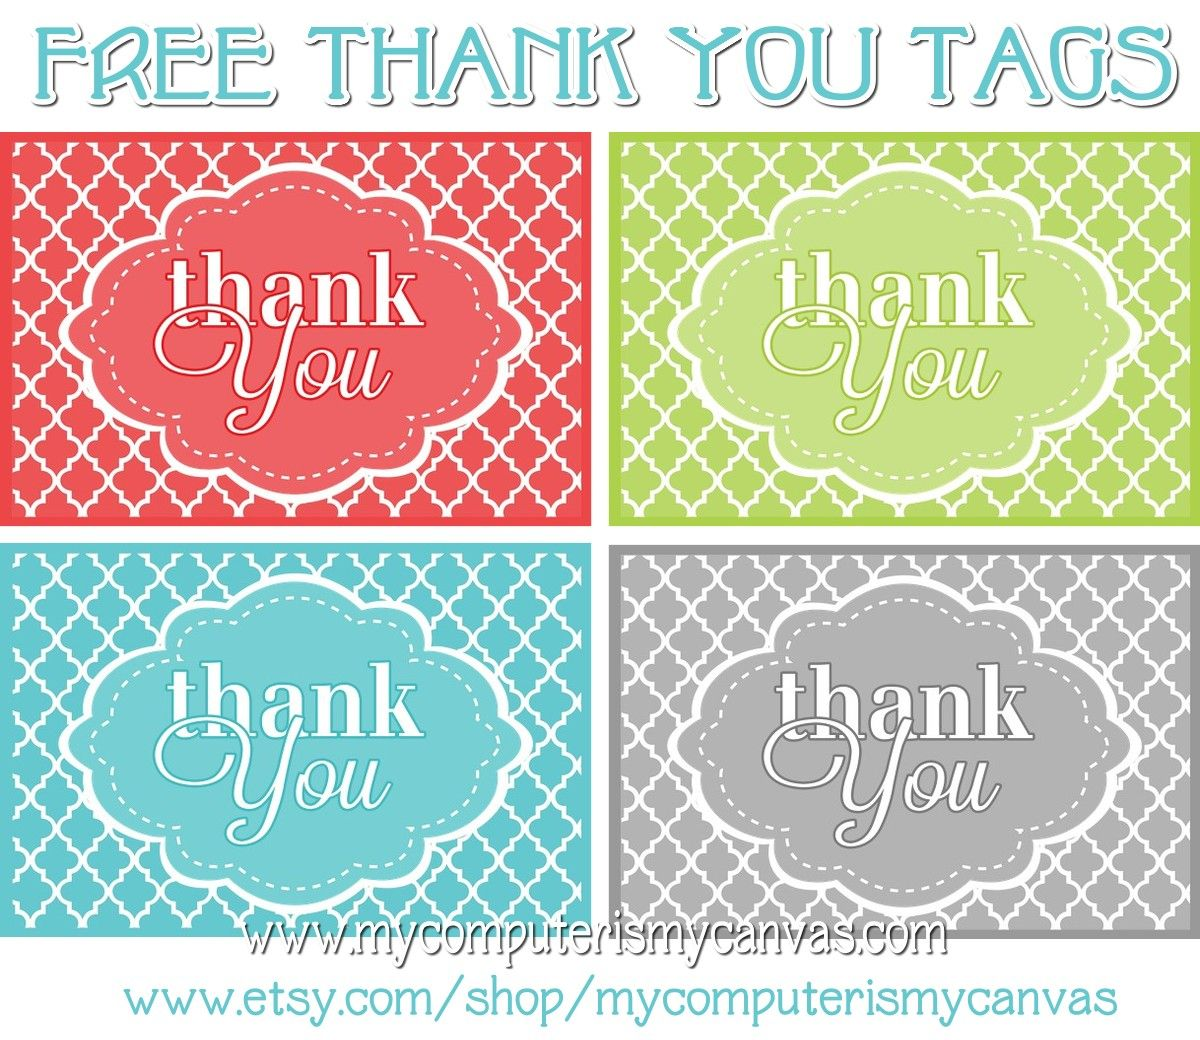 image about Free Printable Thank You Tags for Favors titled FREEBIE PRINTABLE THANK By yourself TAGS Beach front Marriage Designs